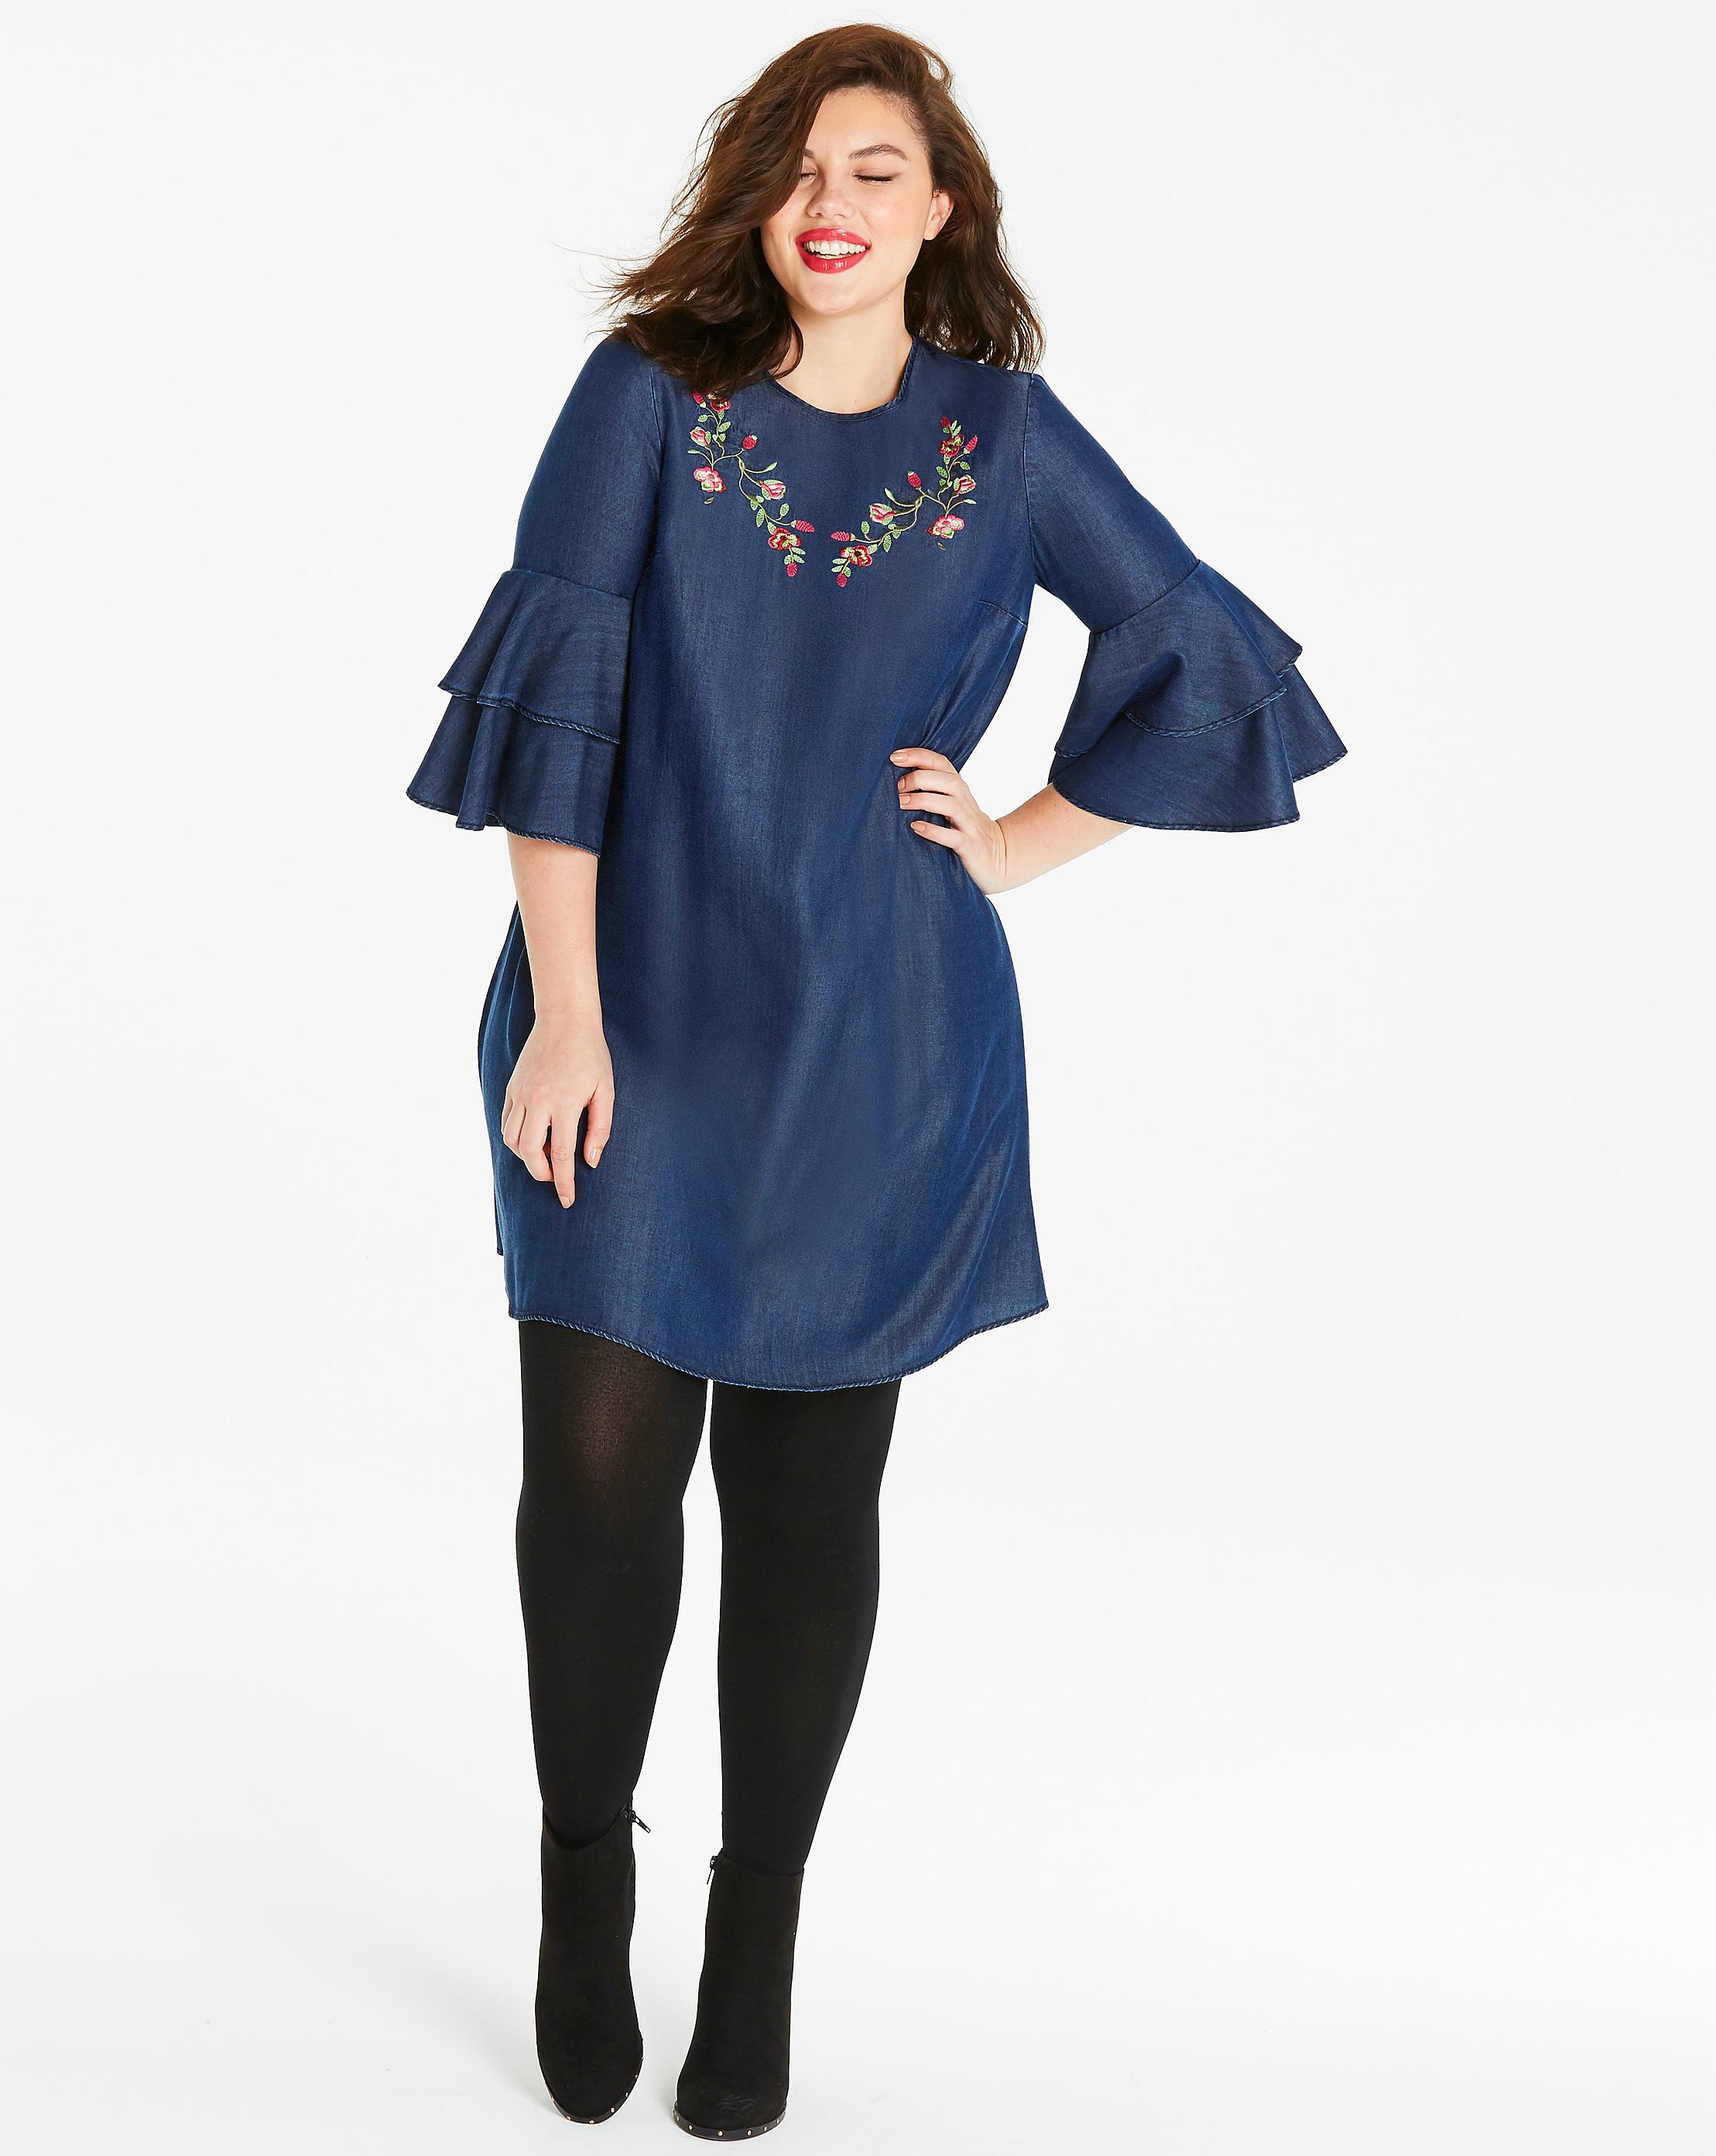 31c8ee6153 Lyst - Simply Be Embroidered Flared Sleeve Denim Swing Dress in Blue